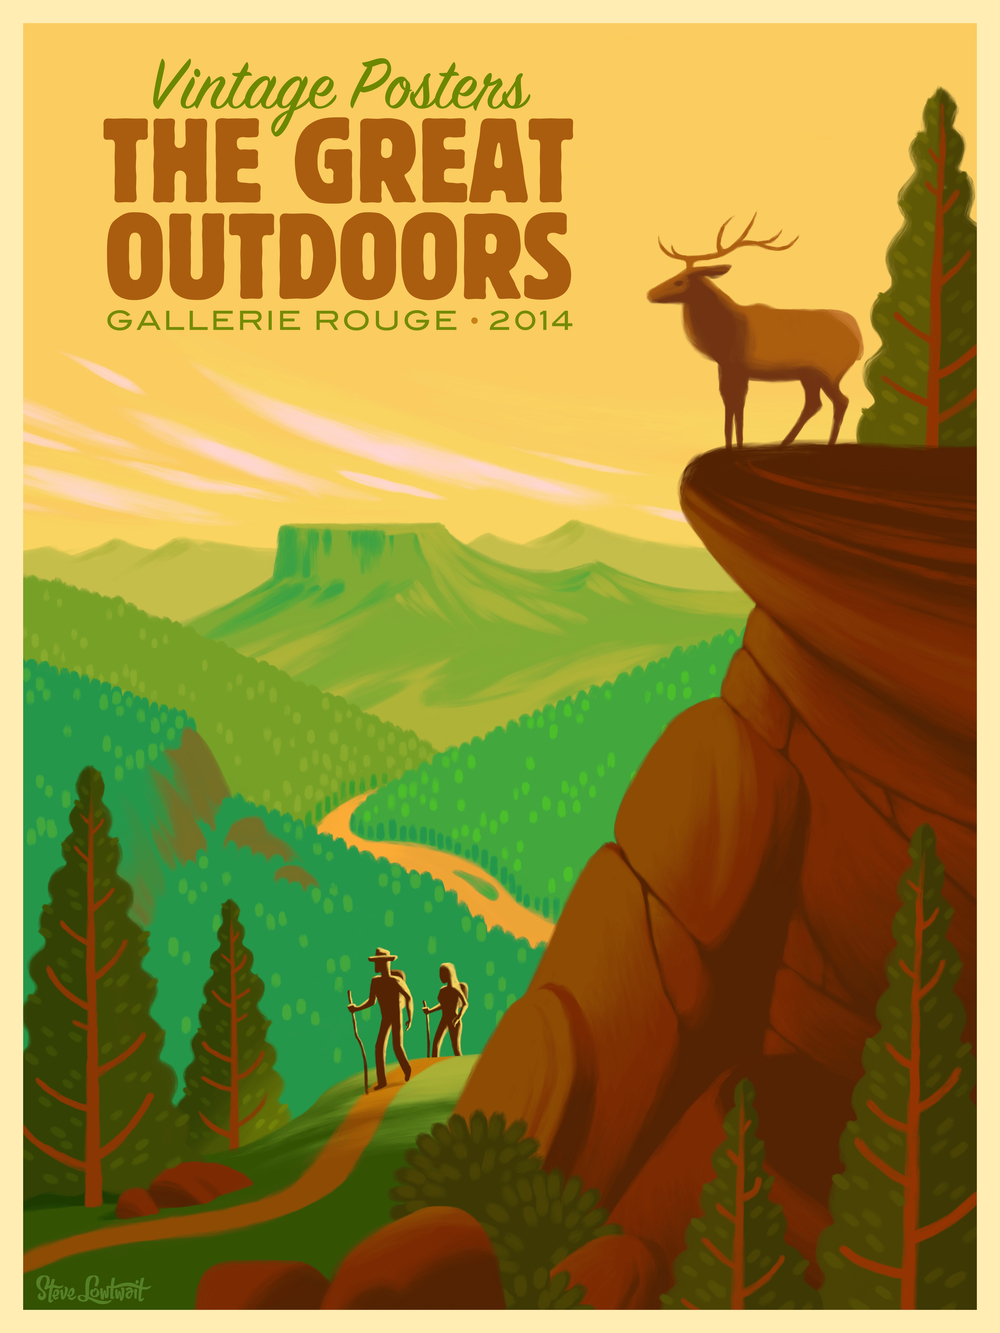 The Great Outdoors • This poster was created for an art gallery opening that specializes in vintage poster art.  Client: Gallerie Rouge